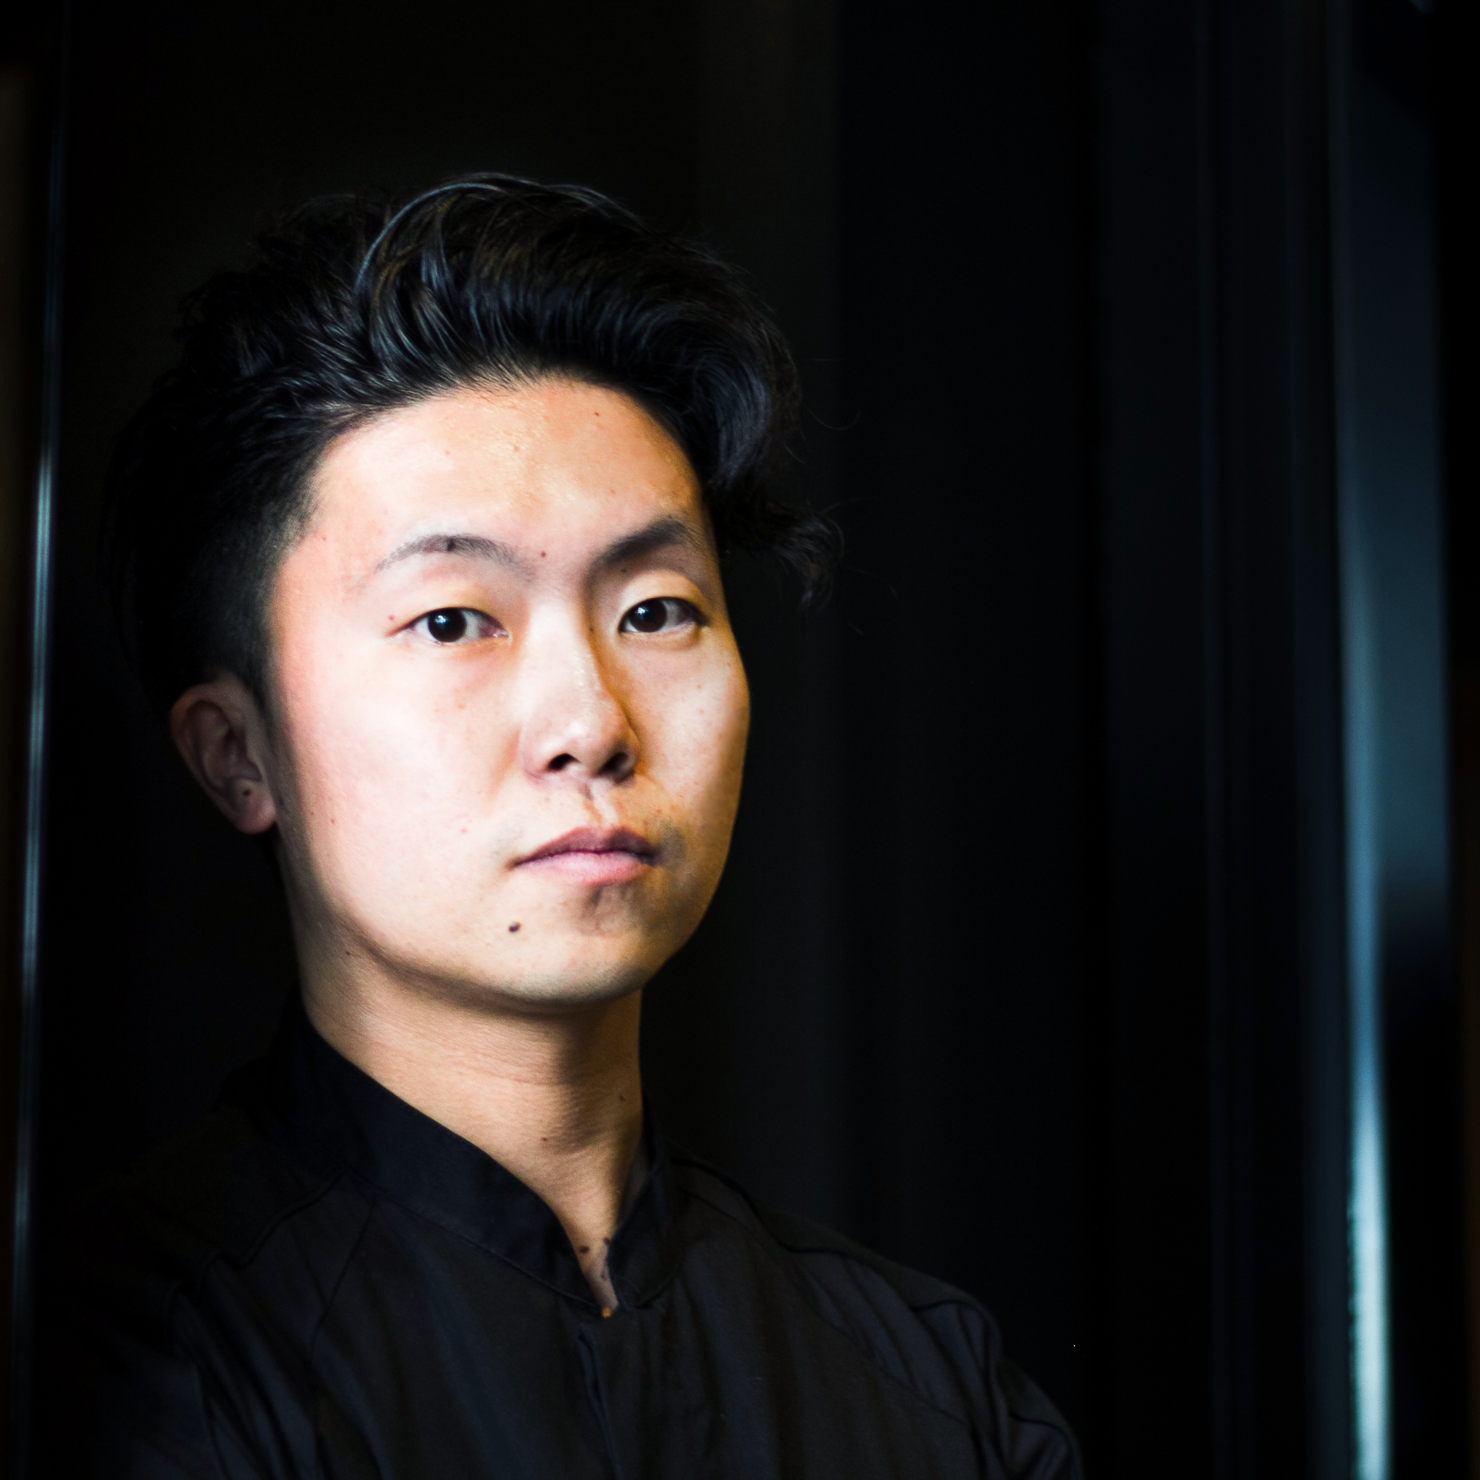 At Hana, chef Nakagawa takes diners on a magical culinary journey.